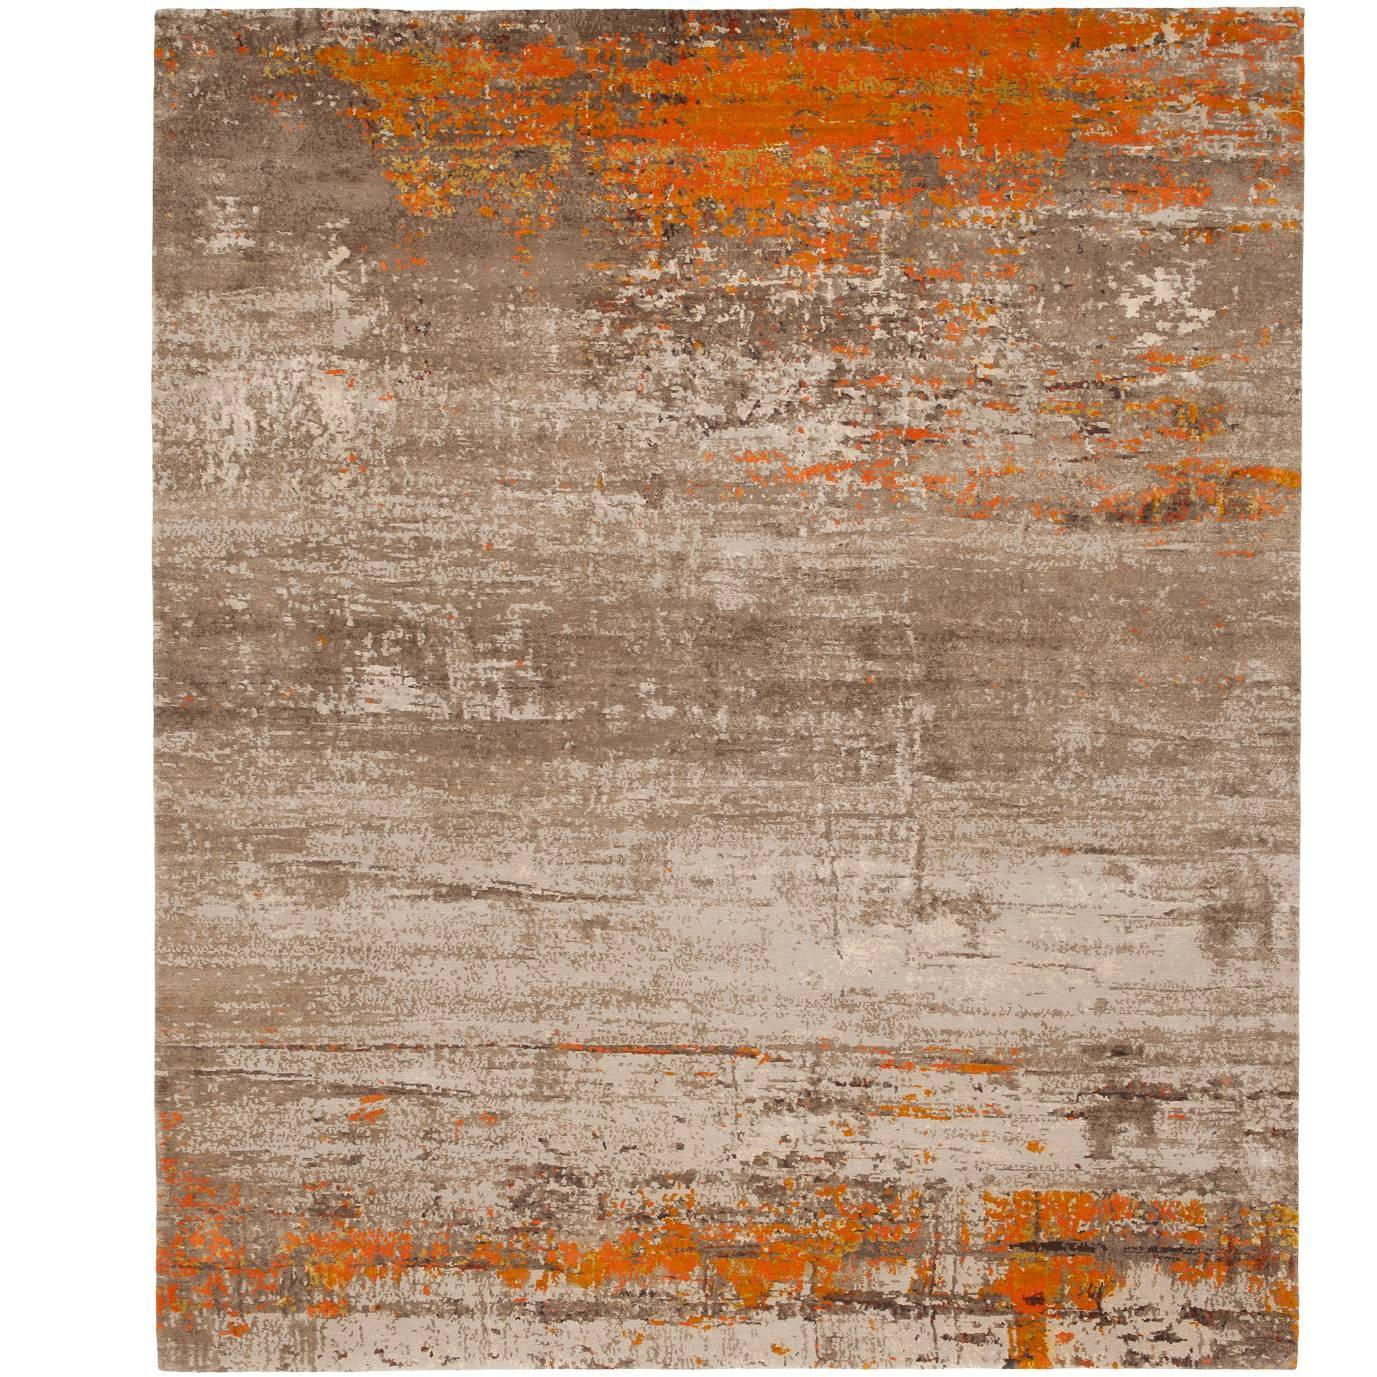 artwork 19 orange accents from artwork carpet collection by jan kath at 1stdibs. Black Bedroom Furniture Sets. Home Design Ideas